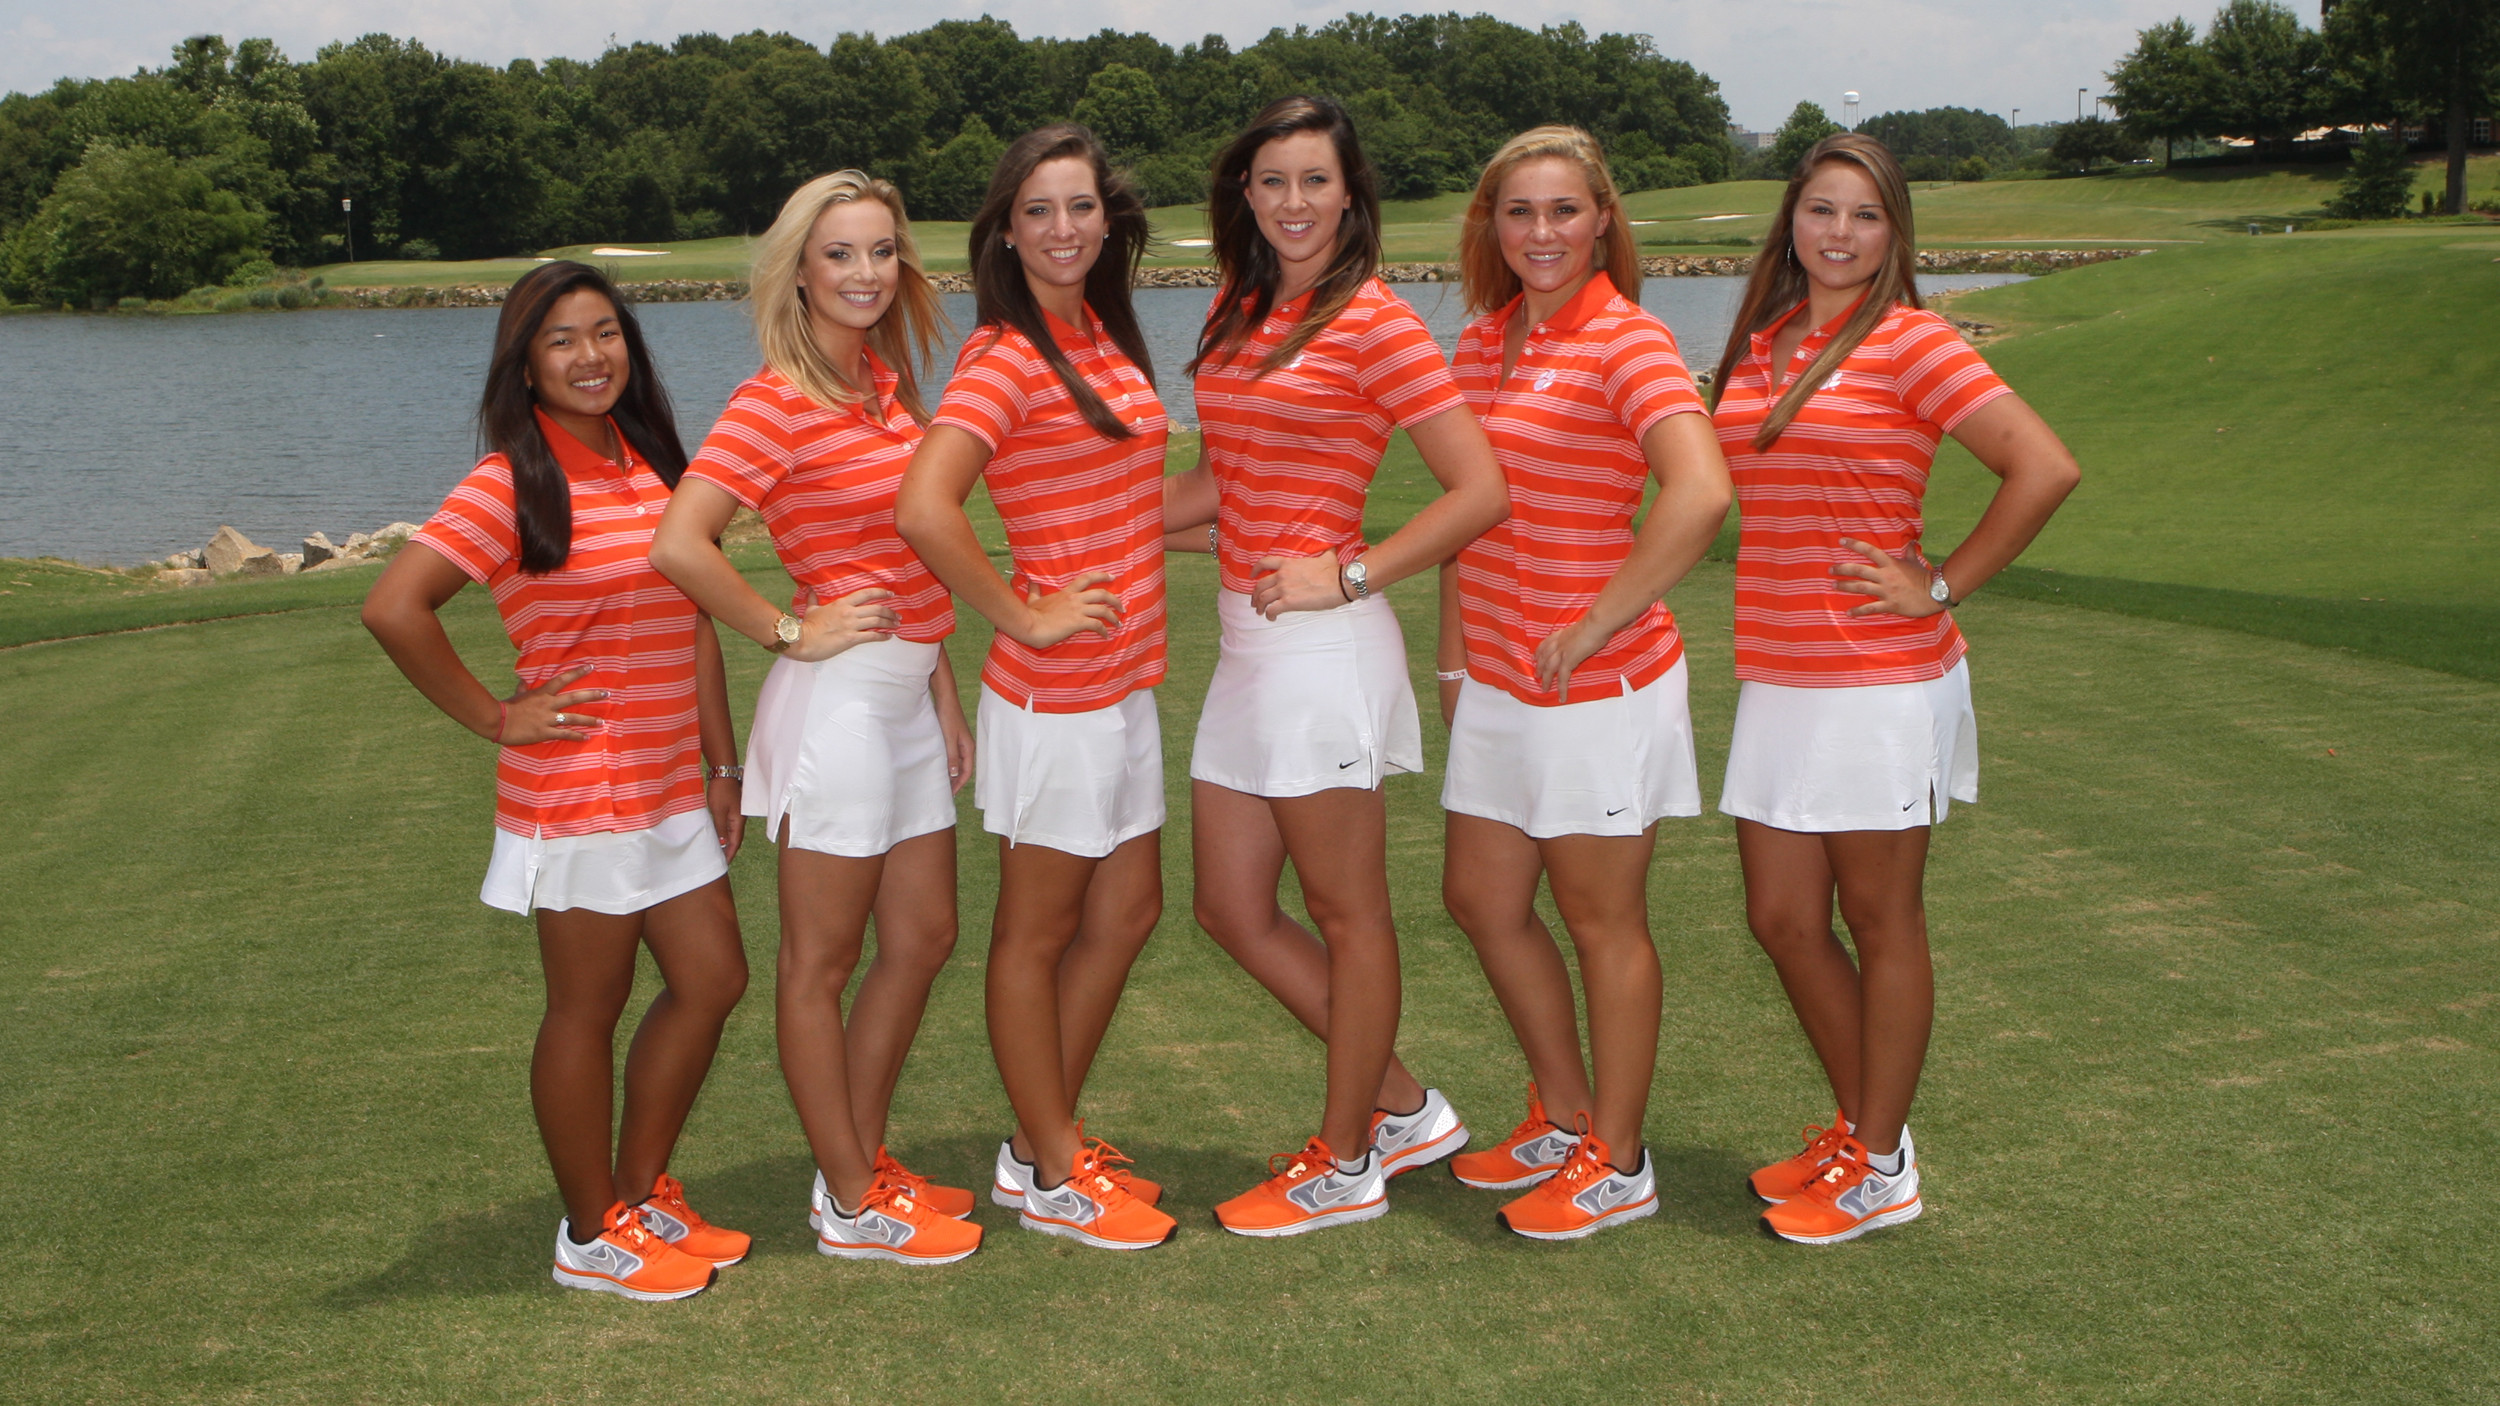 EXCLUSIVE: Long Wait Almost Over for Women's Golf Program